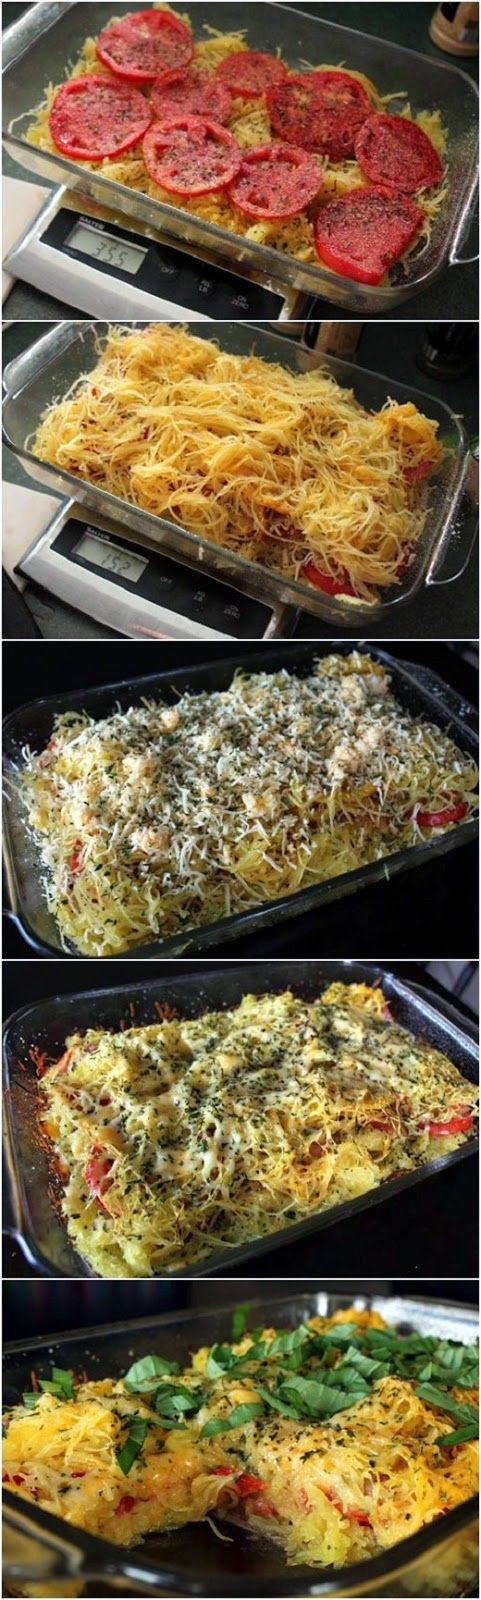 Tomato Basil Spaghetti Squash Bake - Need to calculate the grams of carbs on this. Would be good with some sausage/ground meat added too!